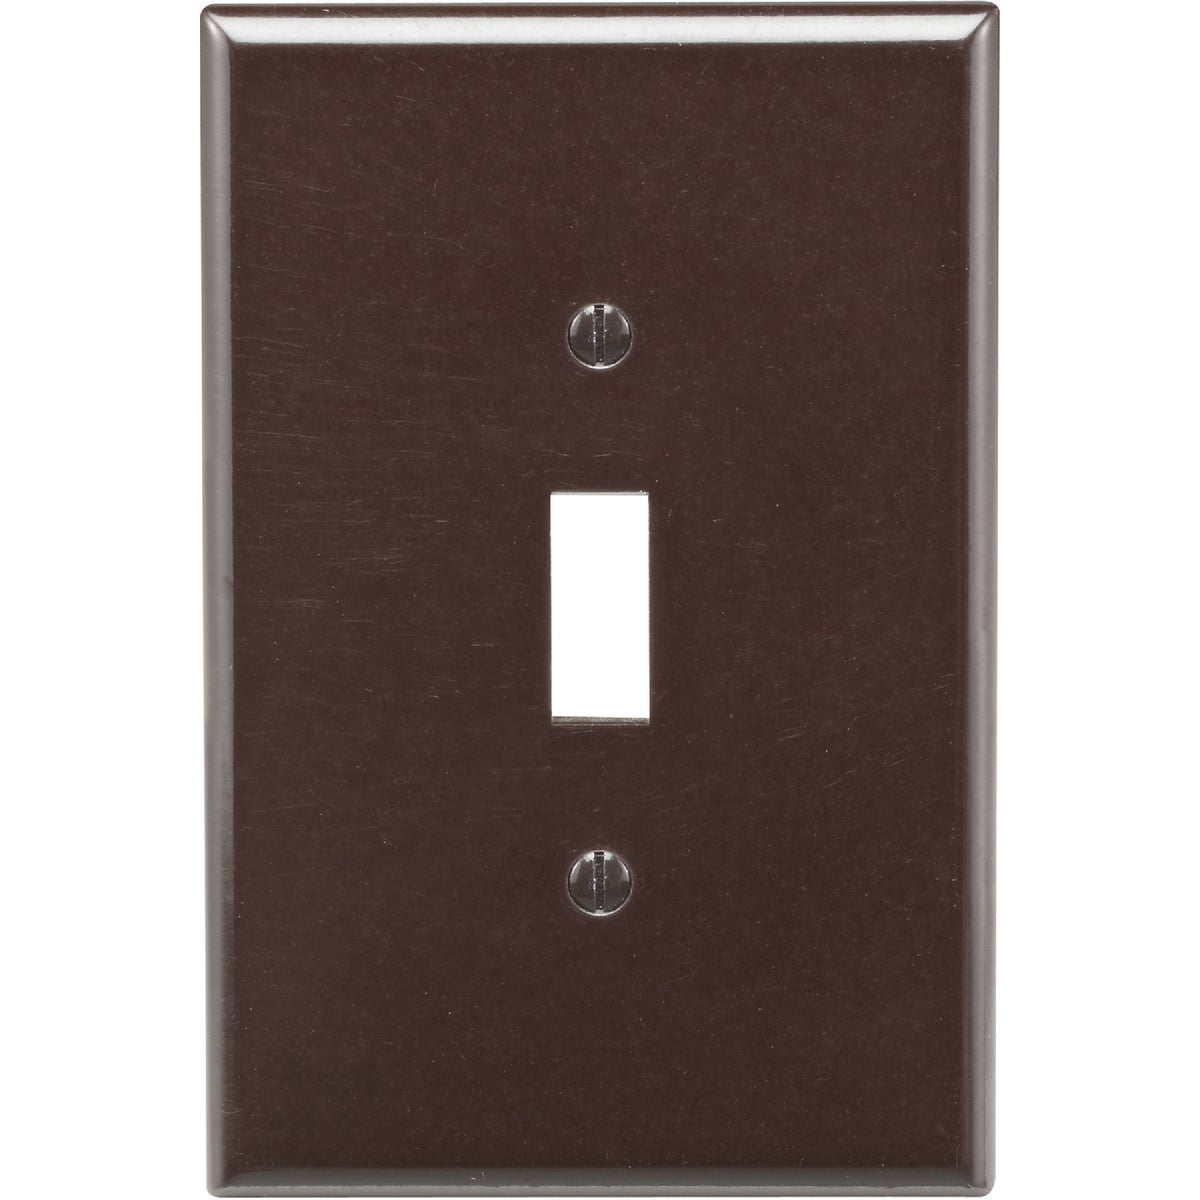 BRN 1-TOGGLE WALL PLATE